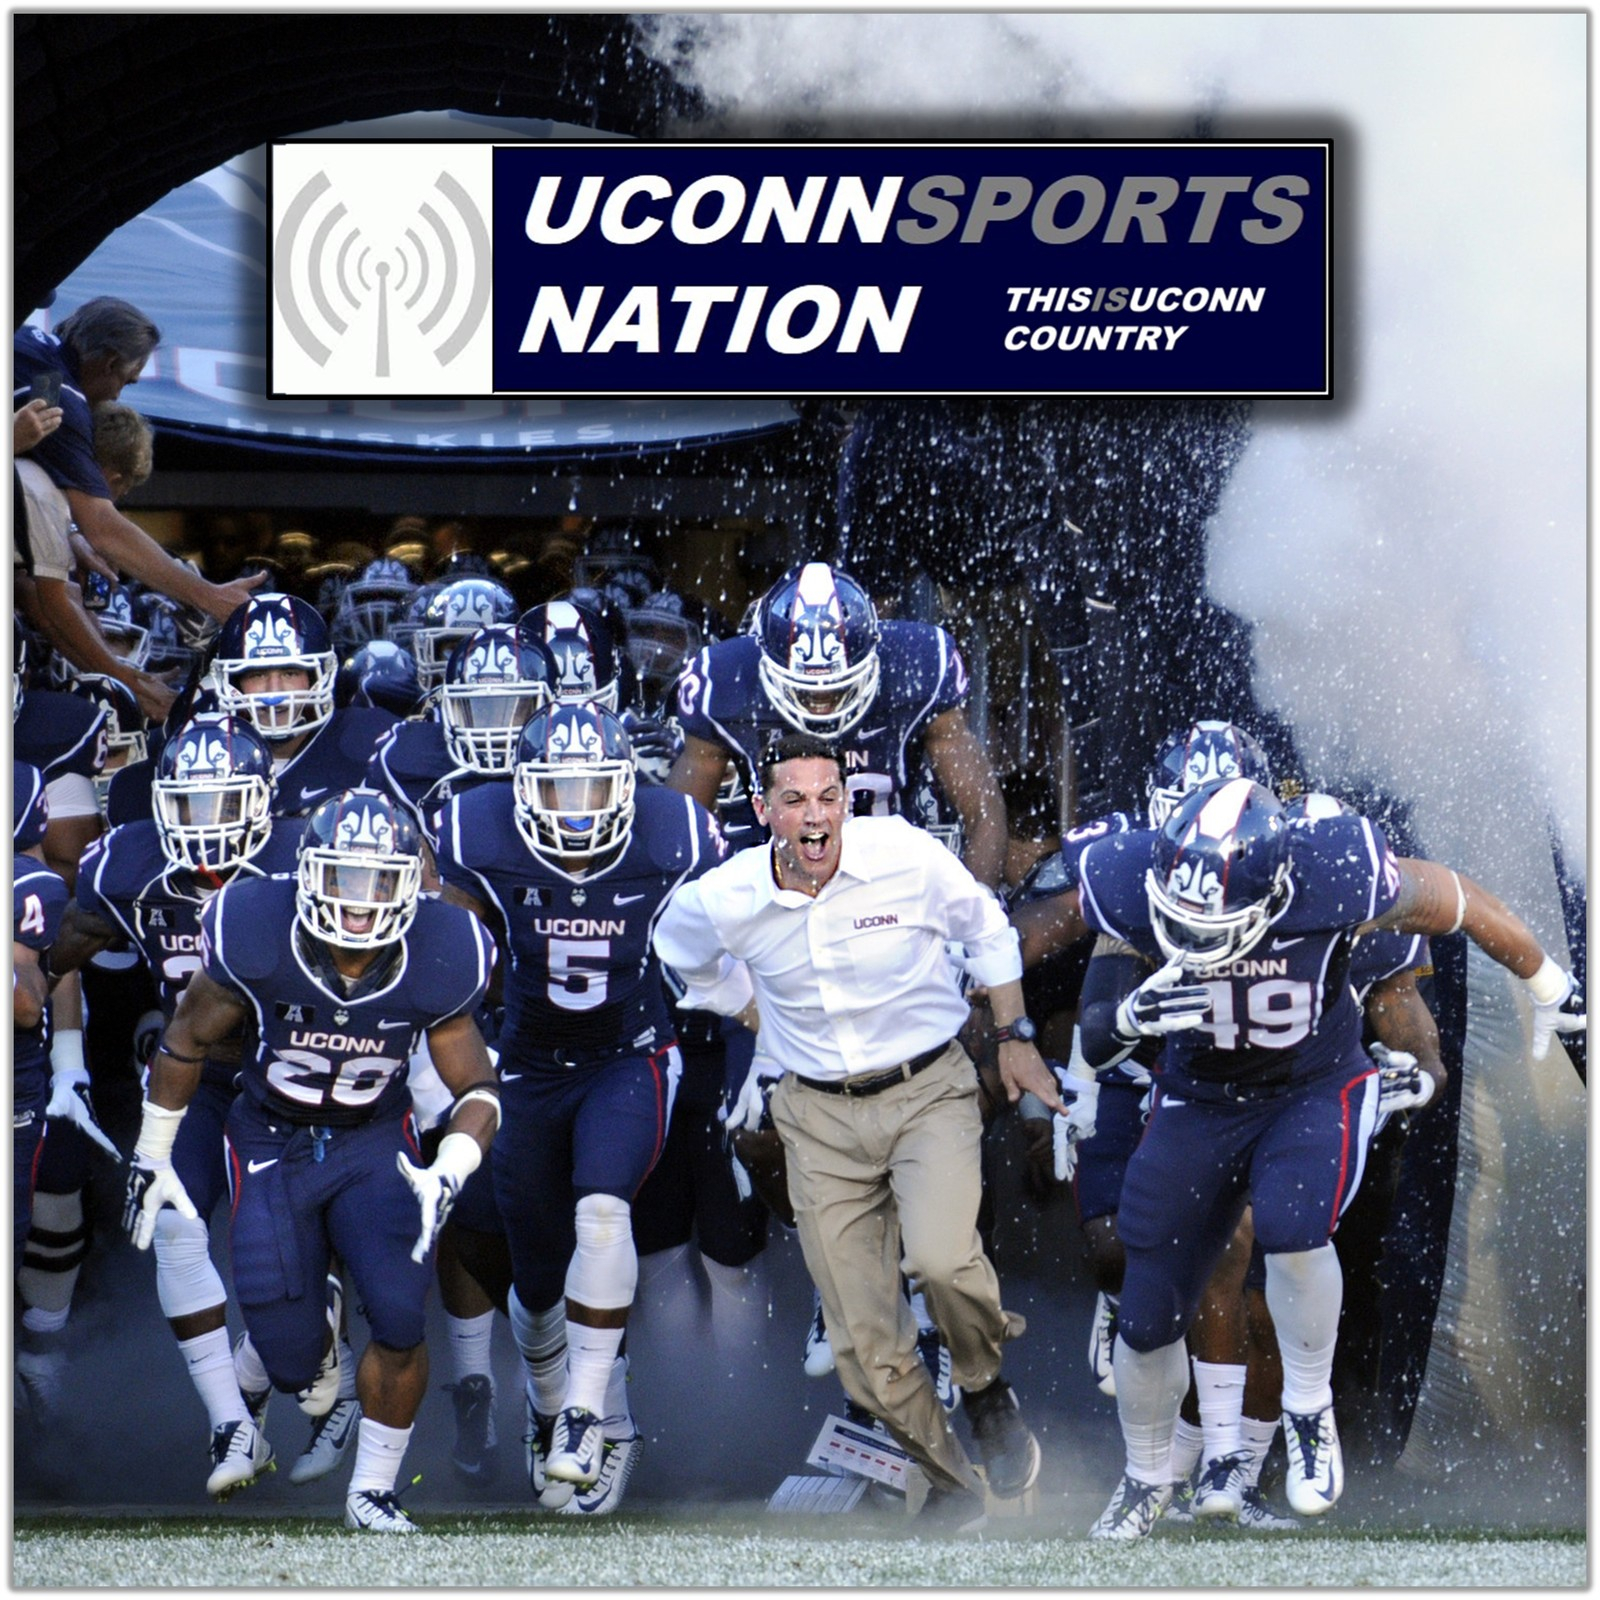 UConn Sports Nation